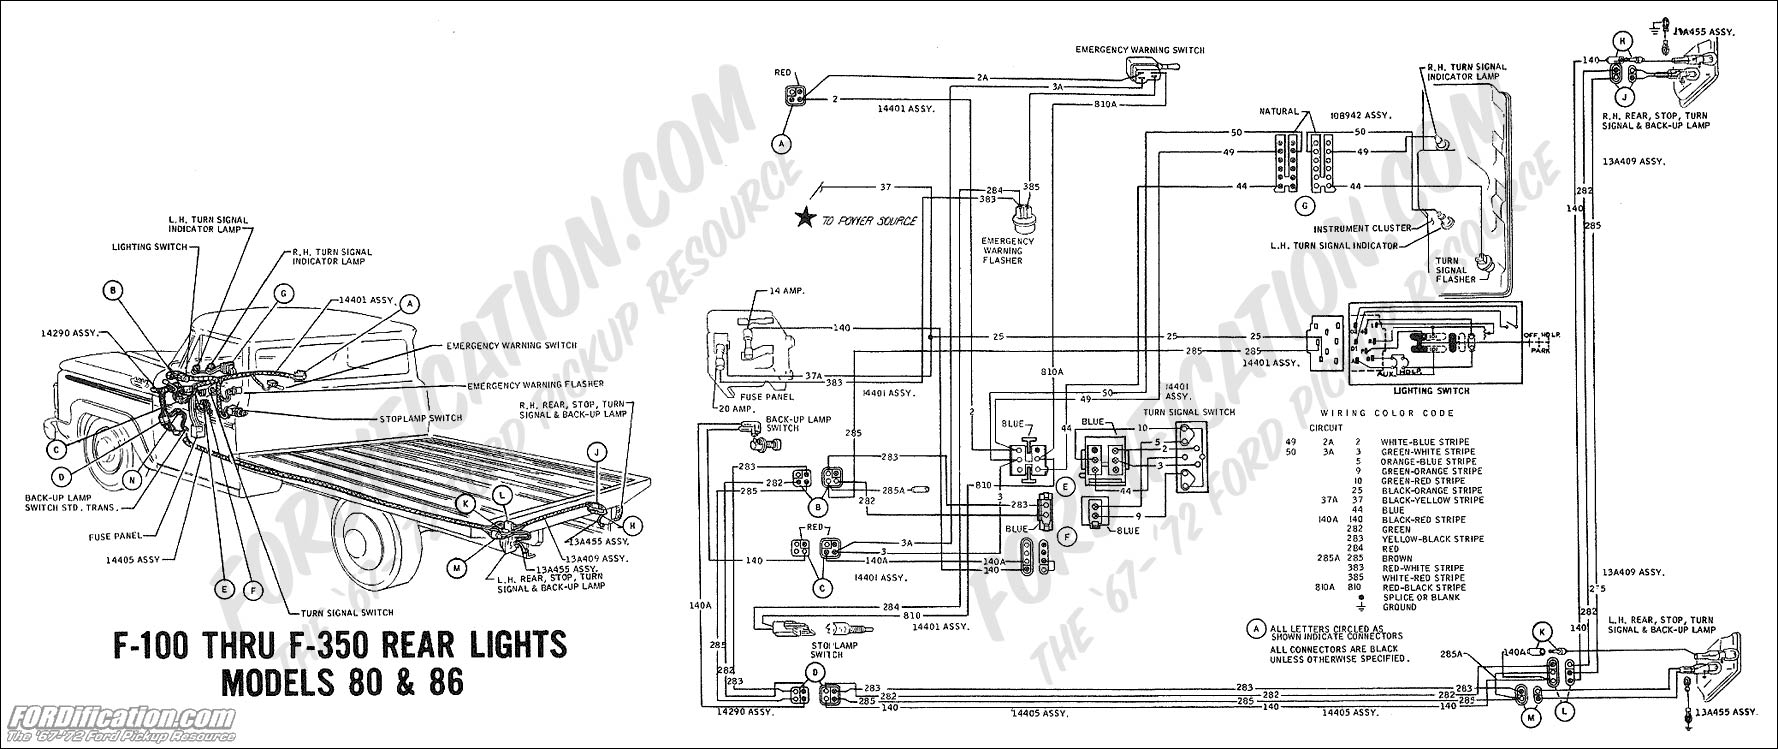 2006 Dodge Ram 1500 Engine Diagram in addition Schematics h as well Ford 7 Pin Trailer Wiring likewise 2001 Ford F 150 Engine Diagram C058b52bbc6e48c8 besides Ford F150 F250 How To Replace Oxygen Sensor 359988. on ford f 250 electrical diagram